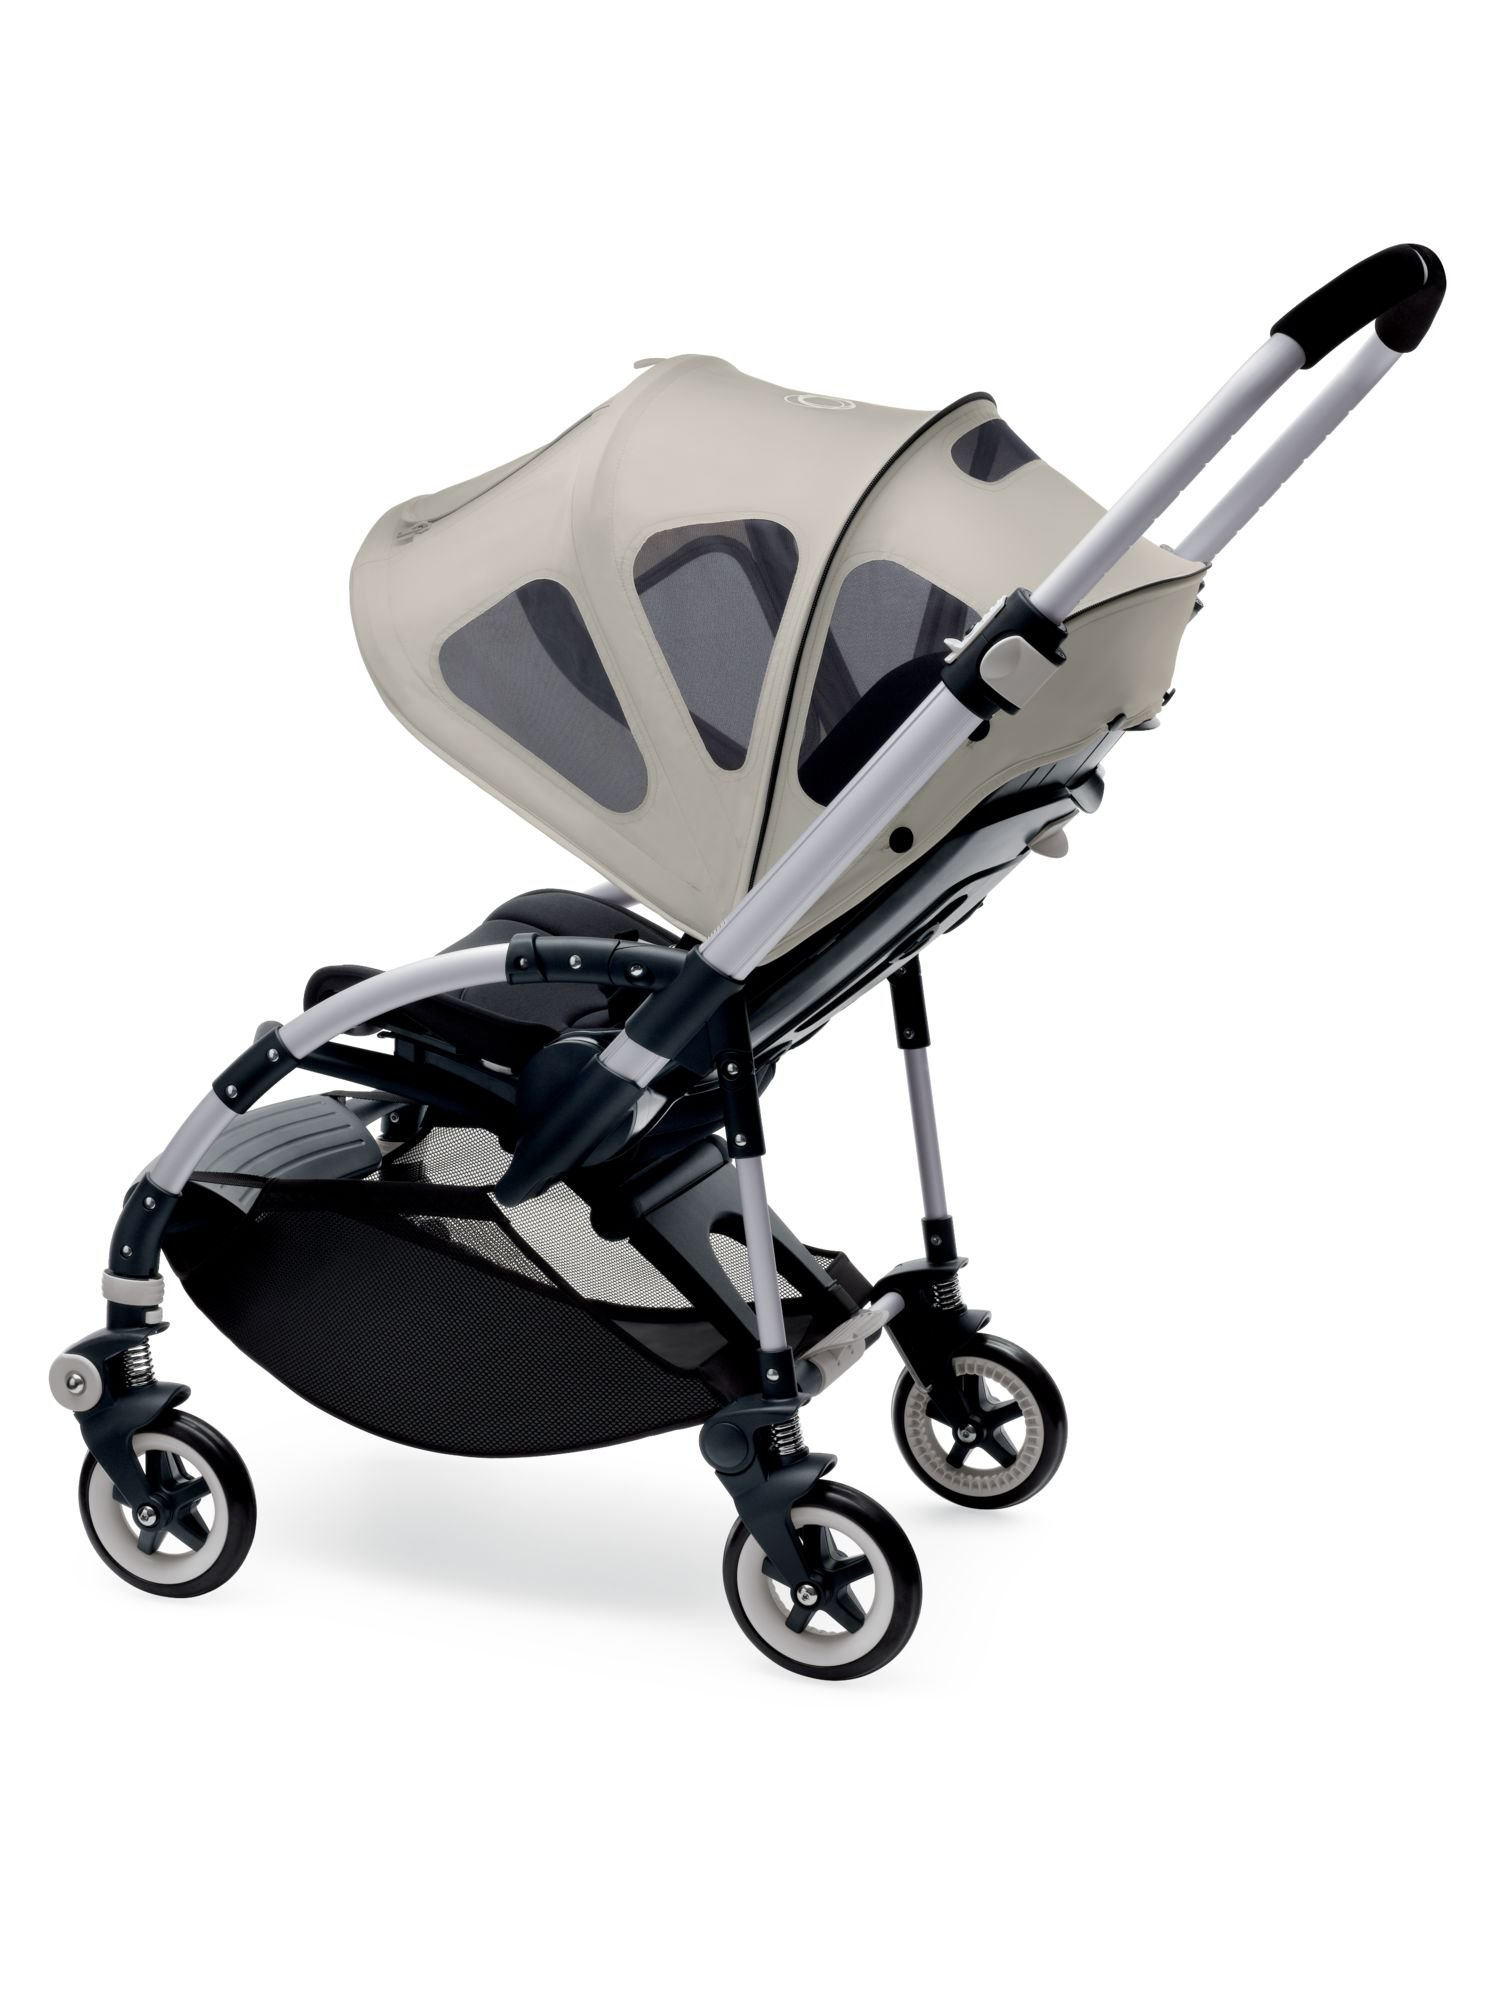 Bugaboo Bee Breezy Sun Canopy, Arctic Grey - Extendable Sun Canopy with UPF Sun Protection and Mesh Ventilation Panels by Bugaboo (Image #4)